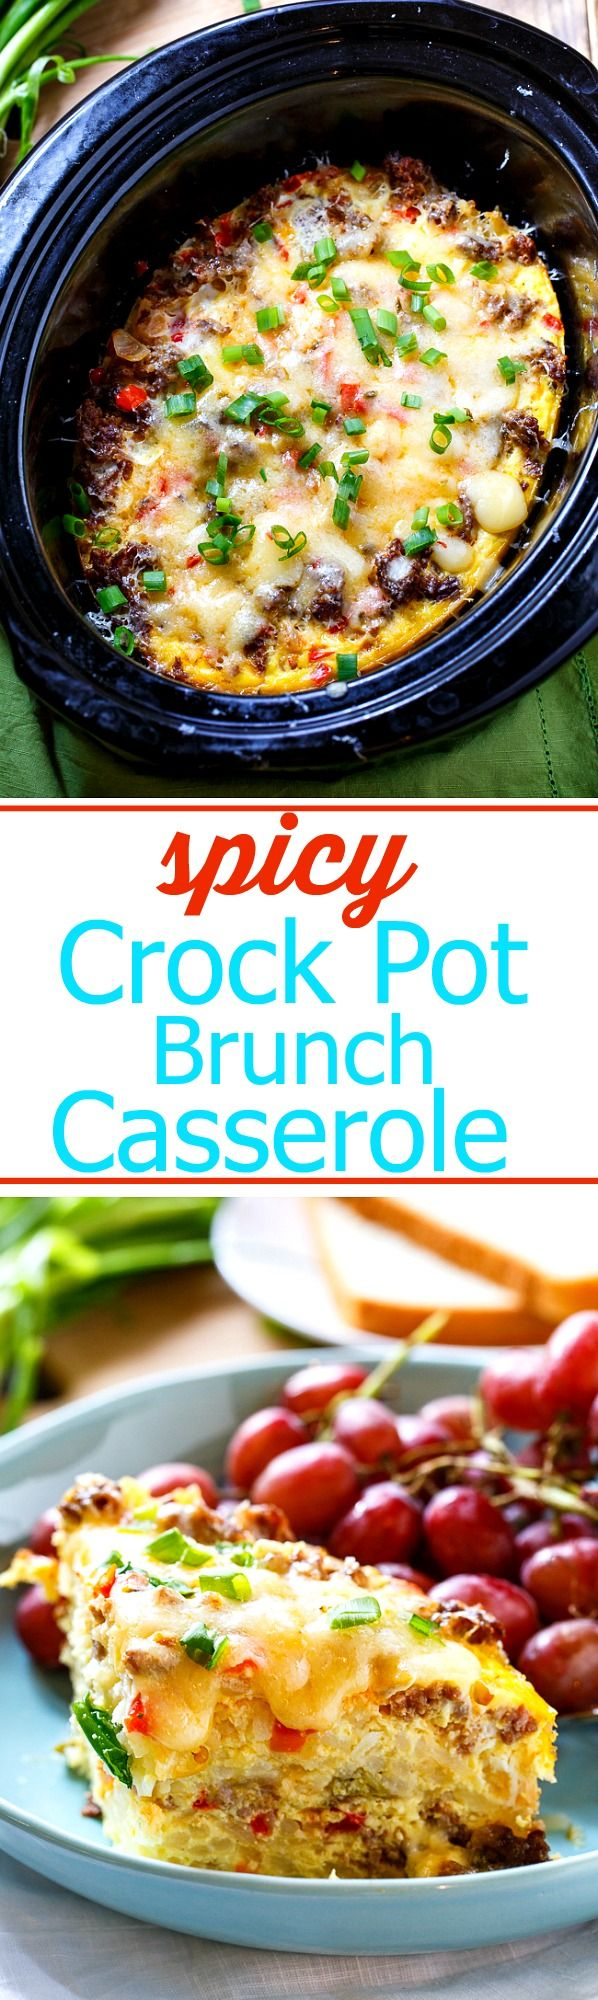 Spicy Crock Pot Brunch Casserole with sausage, hash browns, eggs, and cheese.